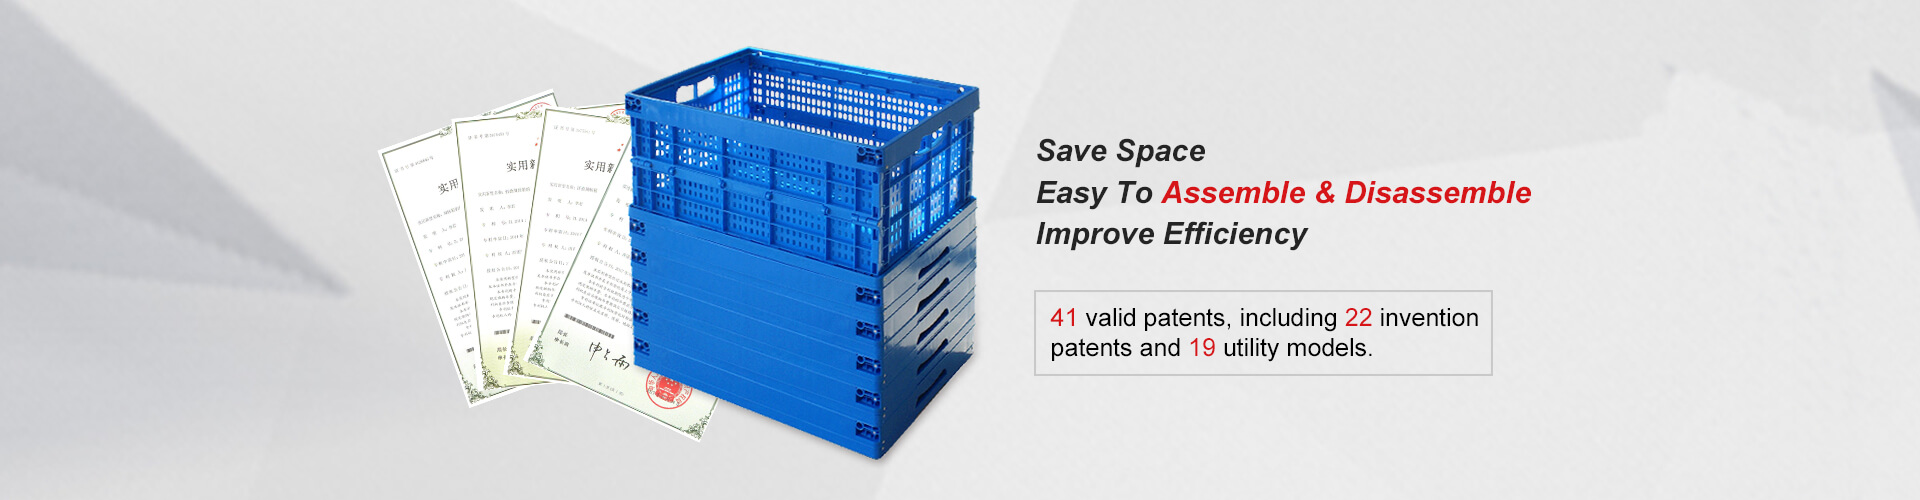 Plastic Foldable Crates - C series